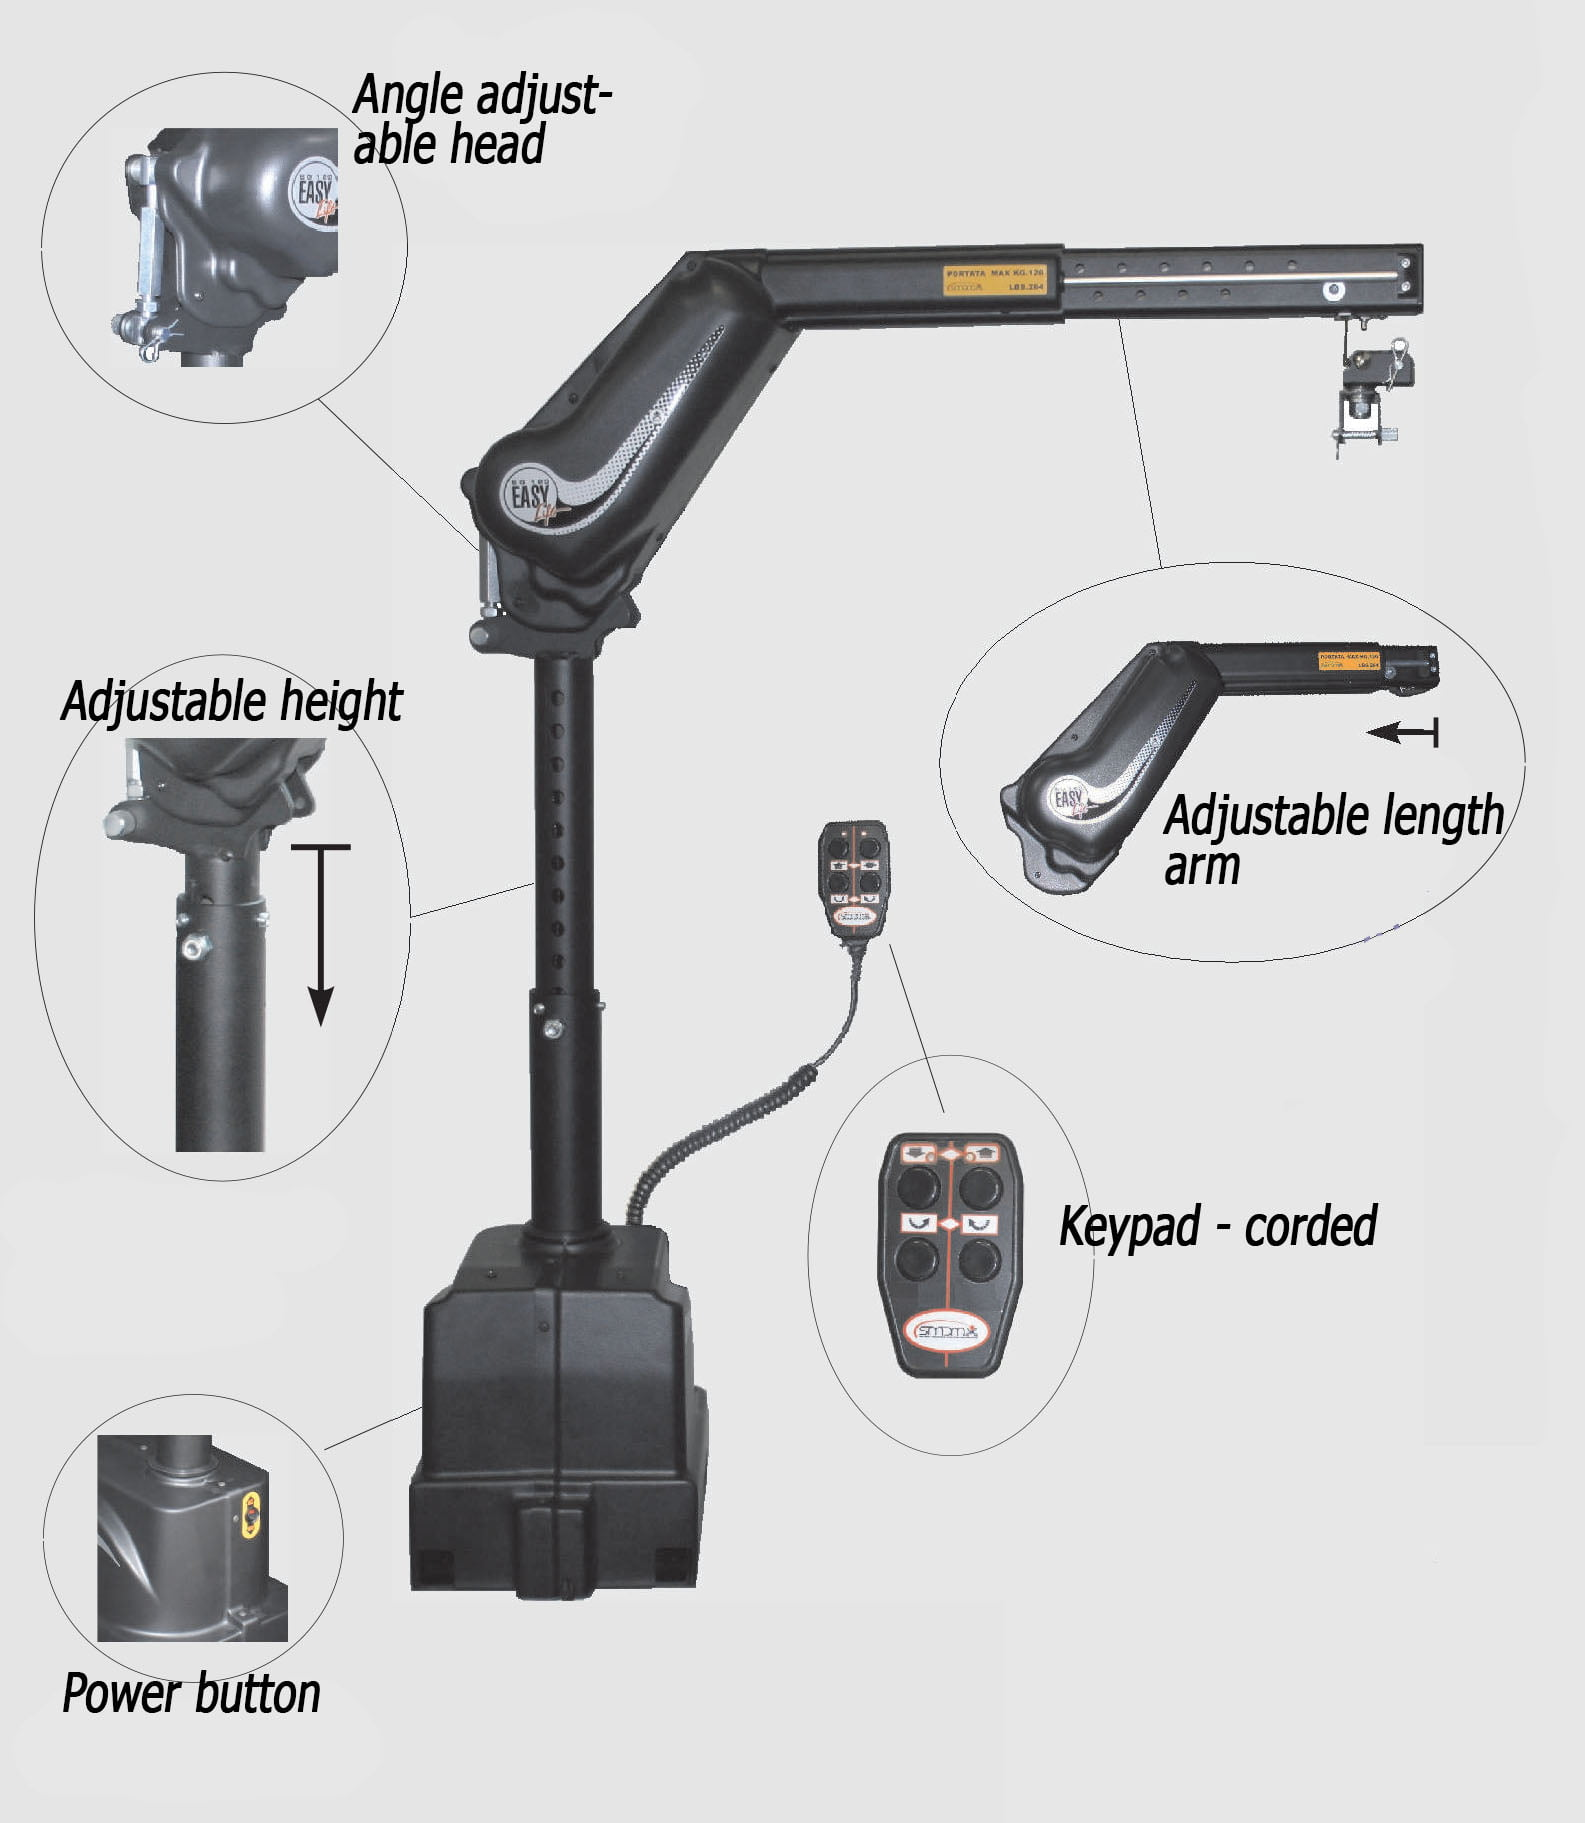 Image of SG120 scooter Hoist with smaller images explaining each component of the unit